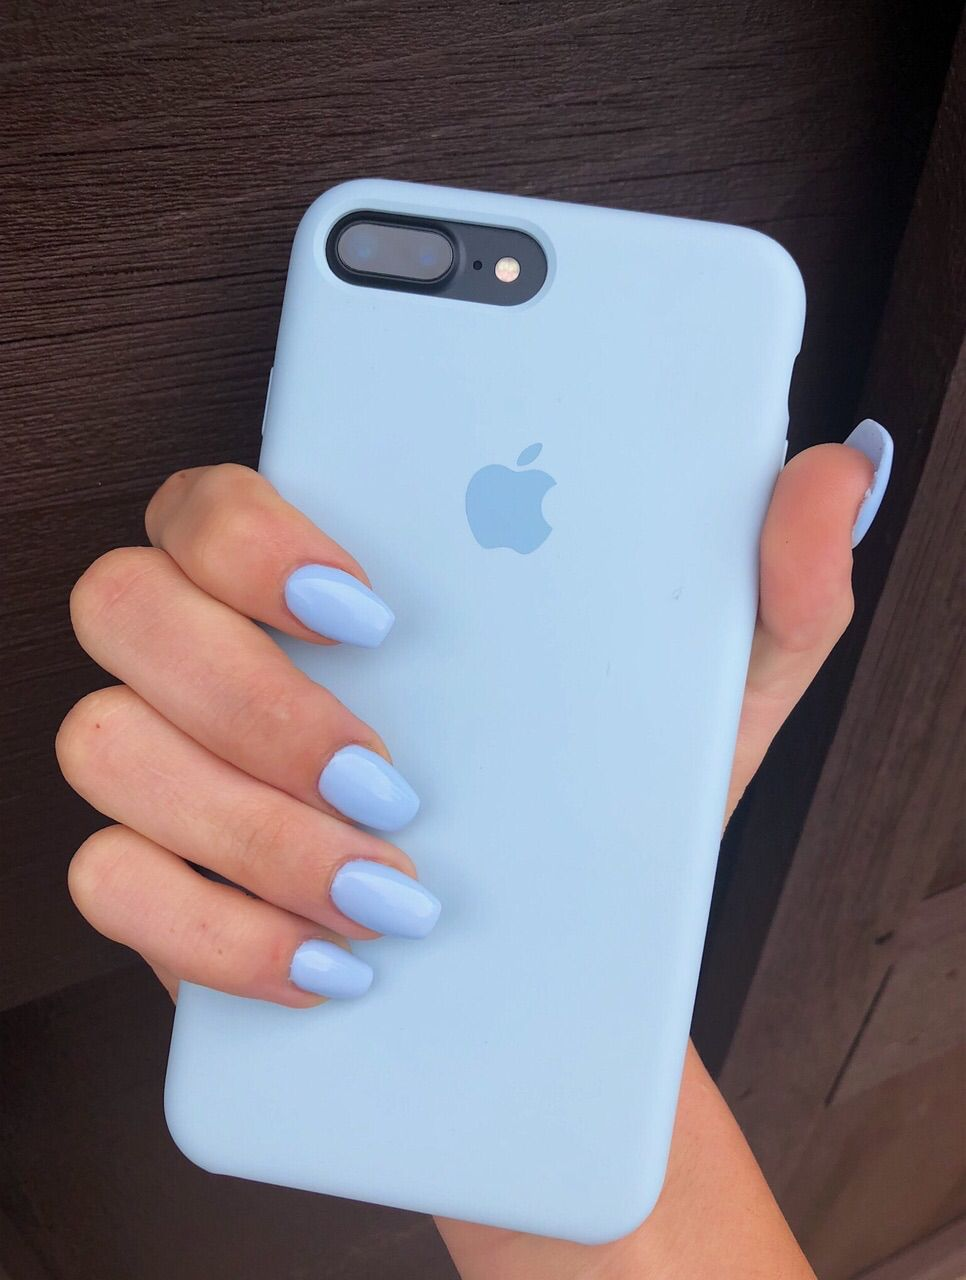 Pin By Carleigh Holt On Nailss Apple Phone Case Silicone Iphone Cases Iphone Phone Cases